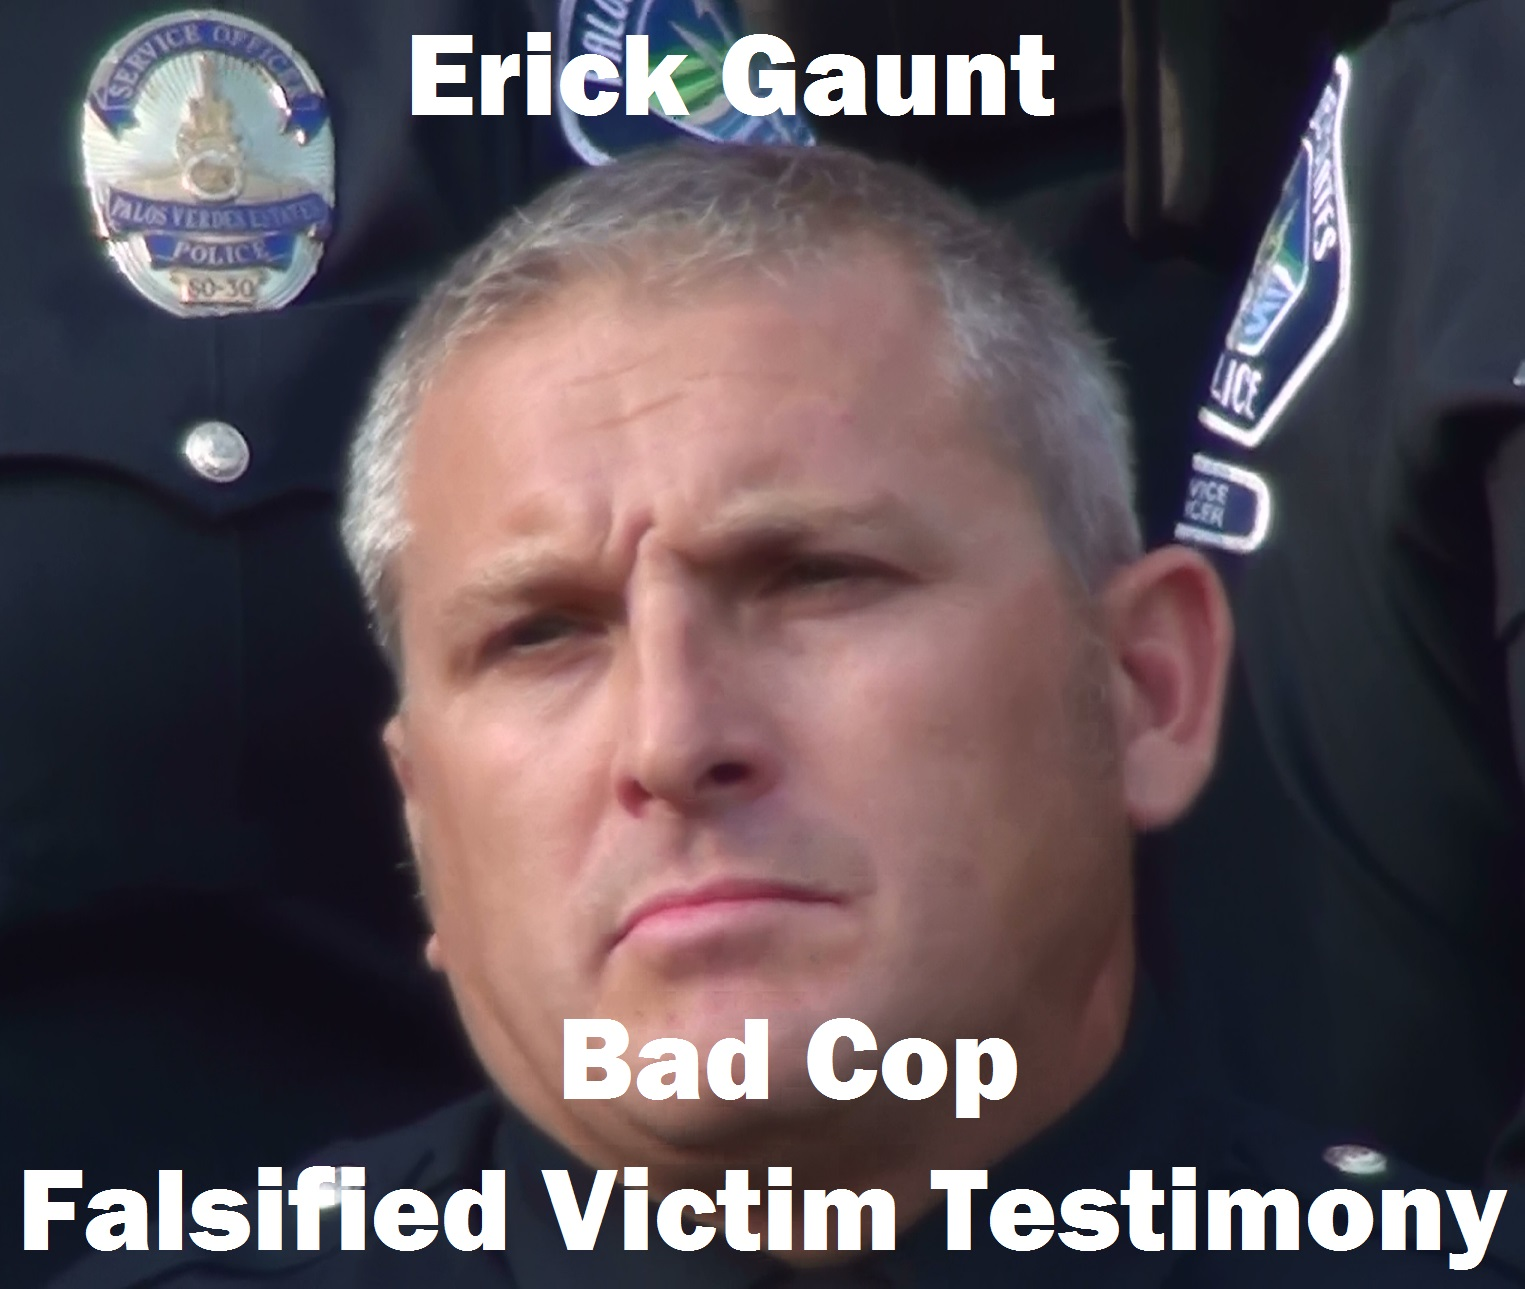 Gaunt Erick Photo Day Headshot 09-22-2015 - Cropped & Annotated